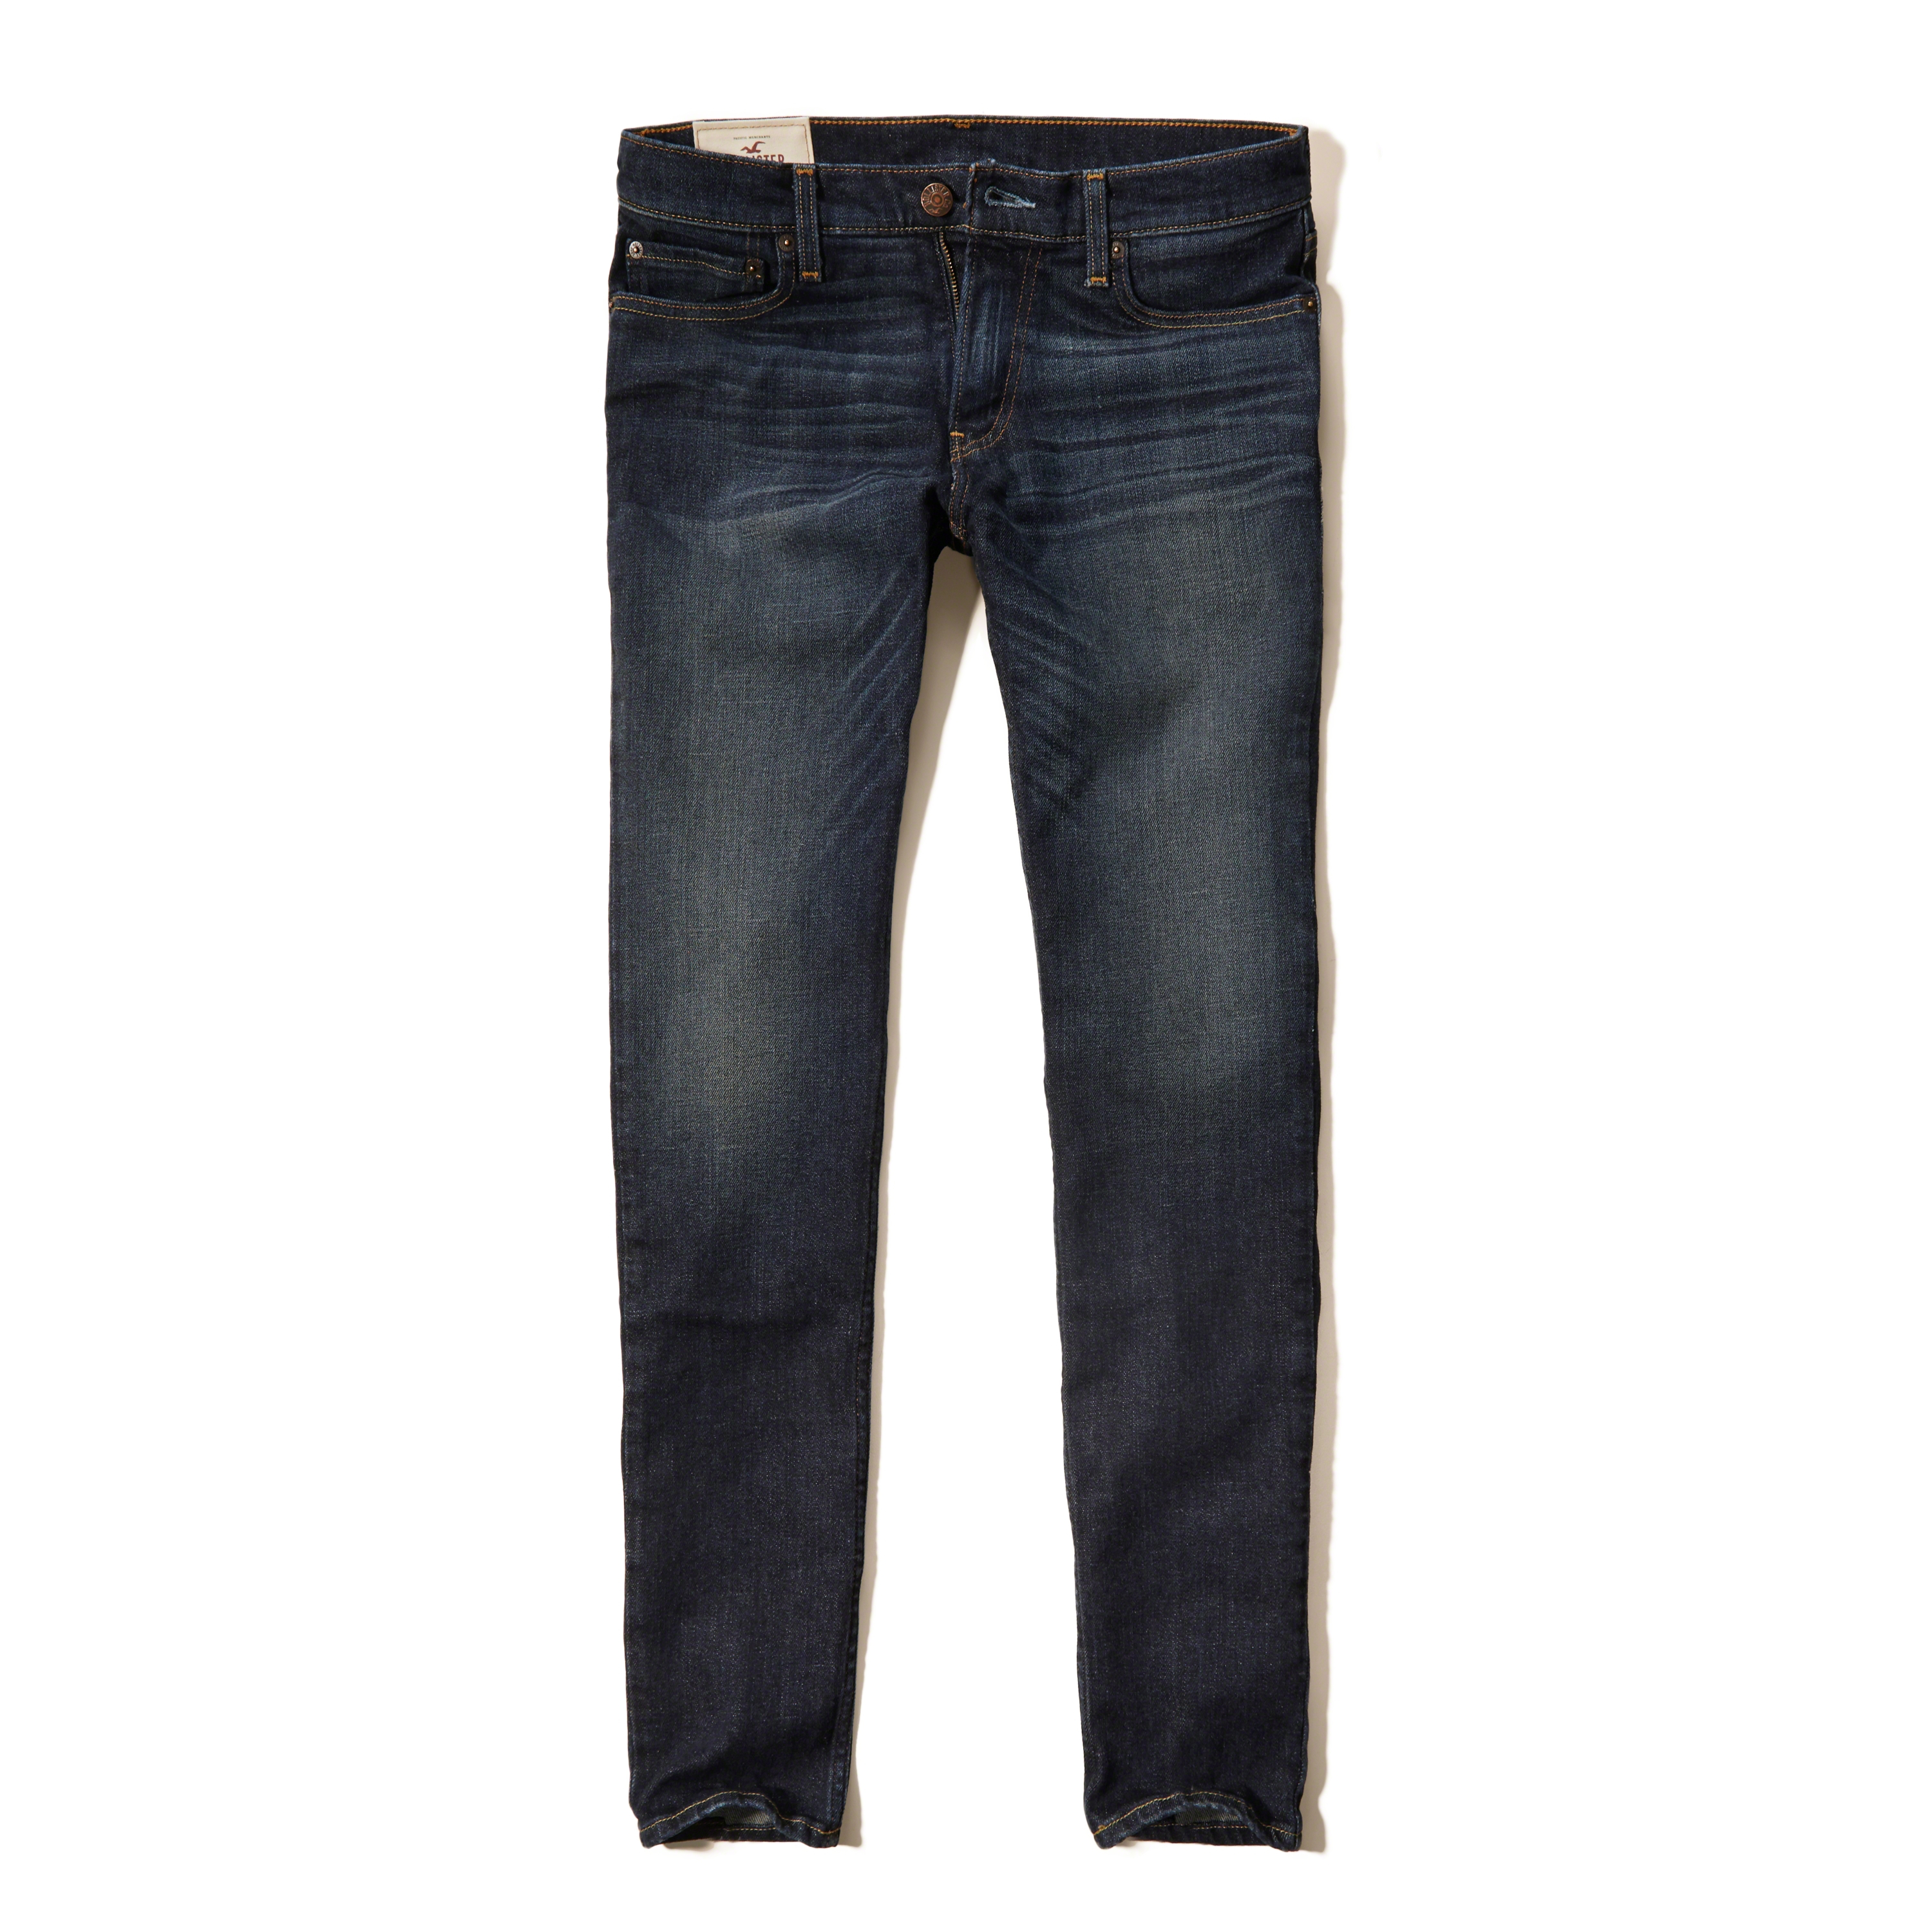 hollister dark jeans for men - photo #14